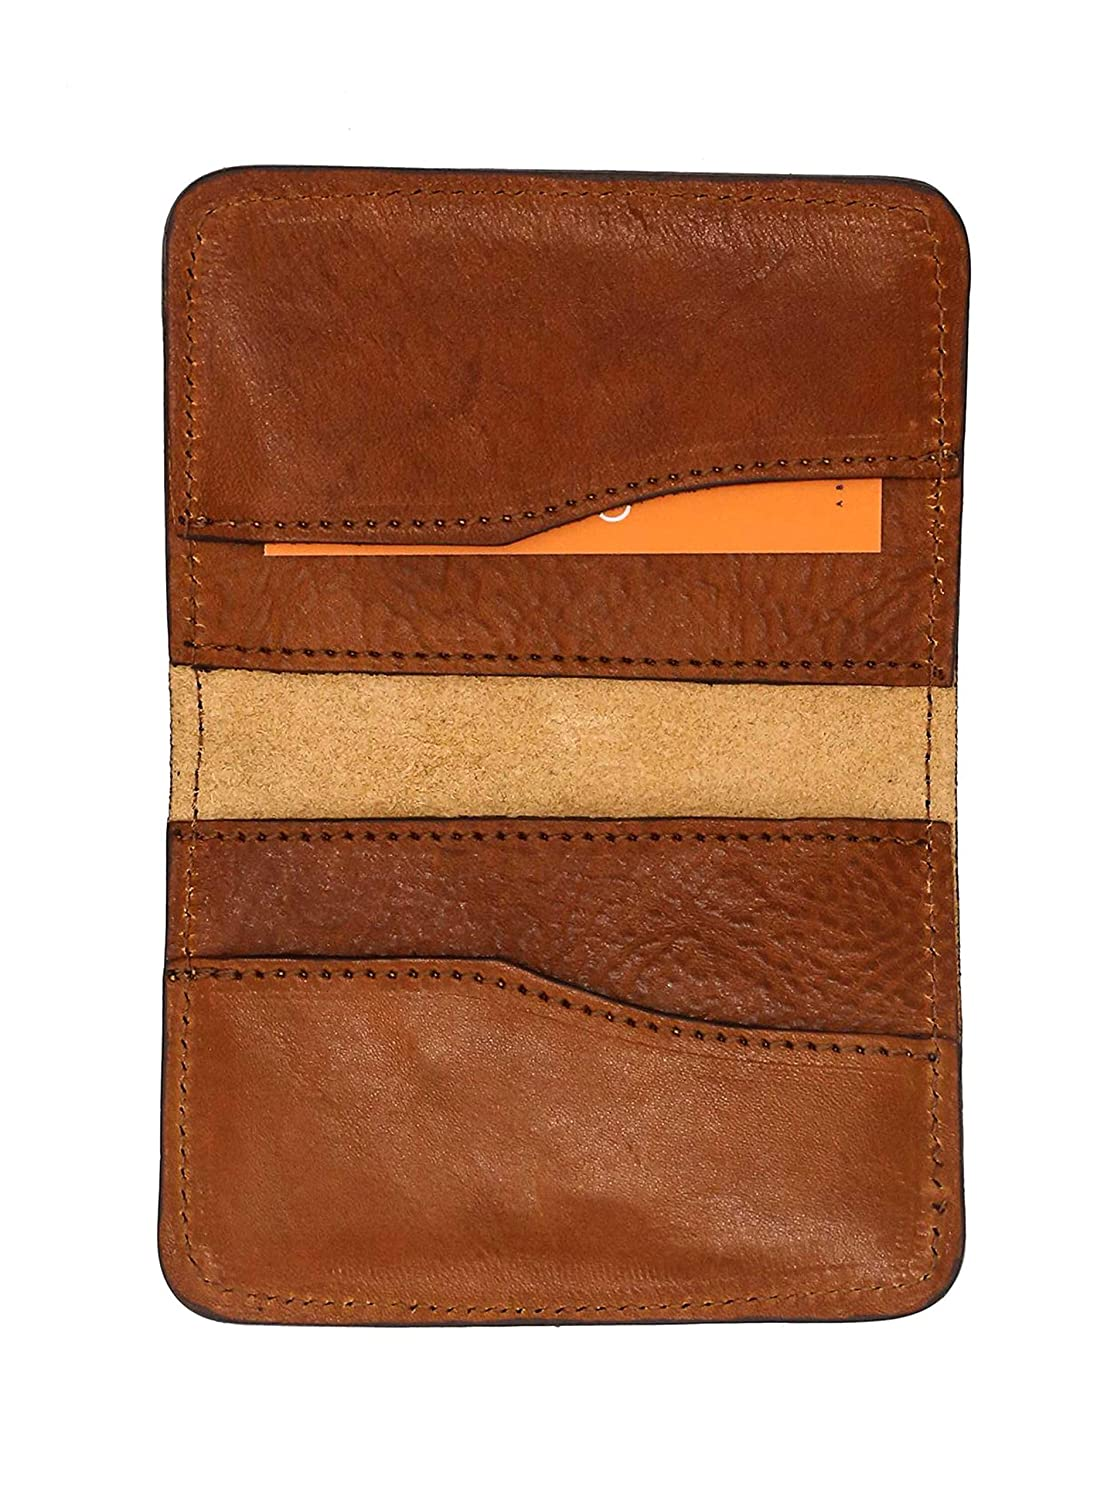 Foldable Genuine Full Grain Leather /& Handcrafted Credit Card Holder Otero Menswear Wallet